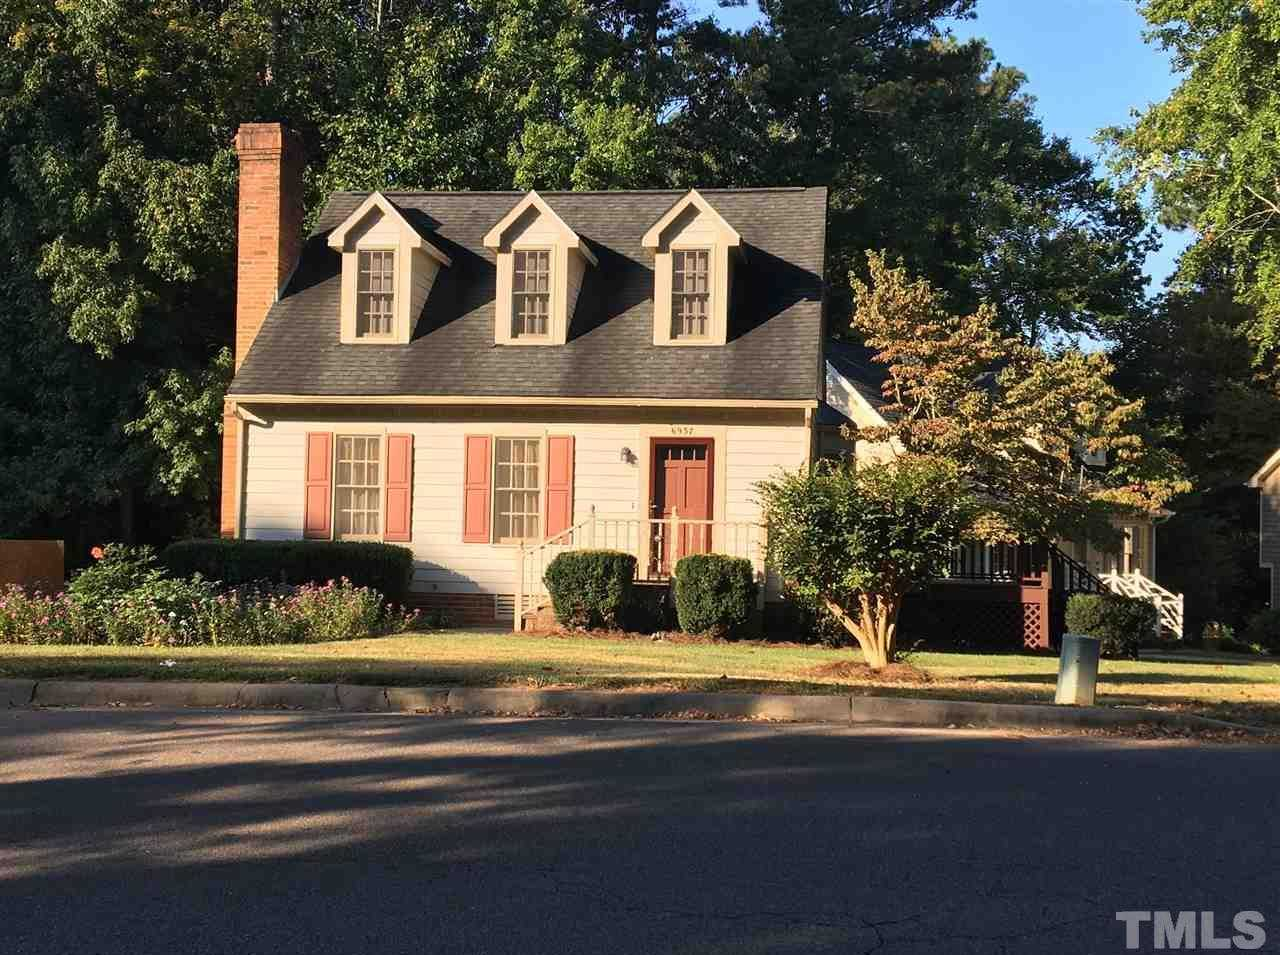 $229,999 - 3Br/2Ba -  for Sale in Brittany Woods, Raleigh